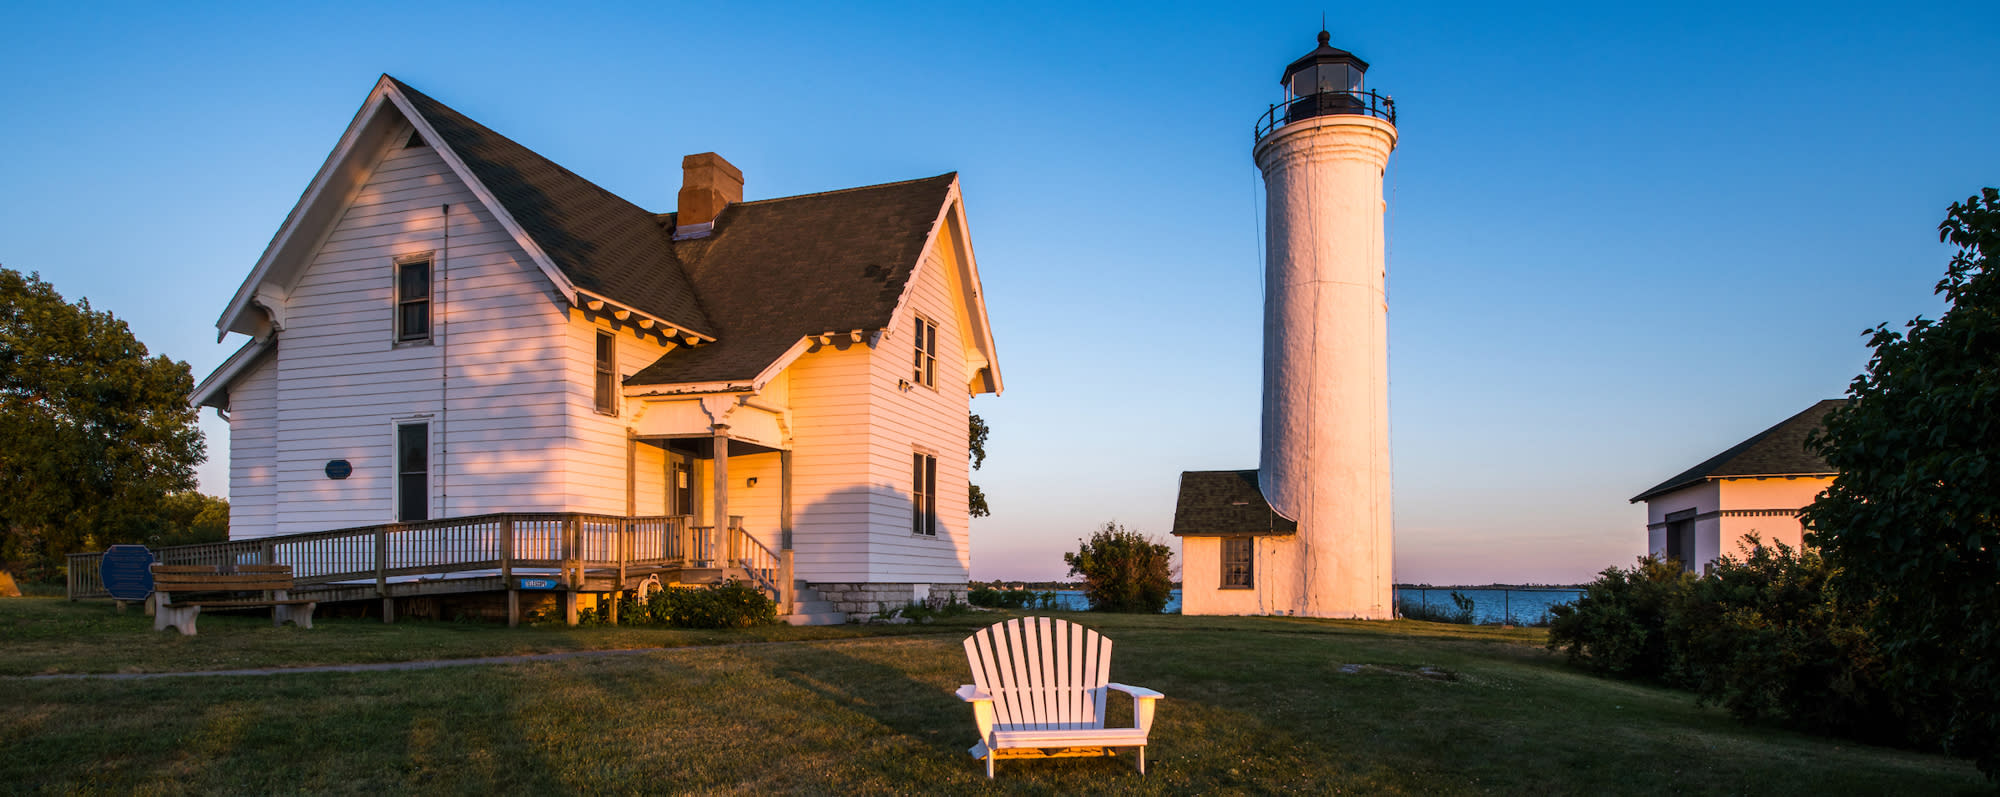 A photo of the exterior of Tibbetts Point Lighthouse with an Adirondack chair on the lawn